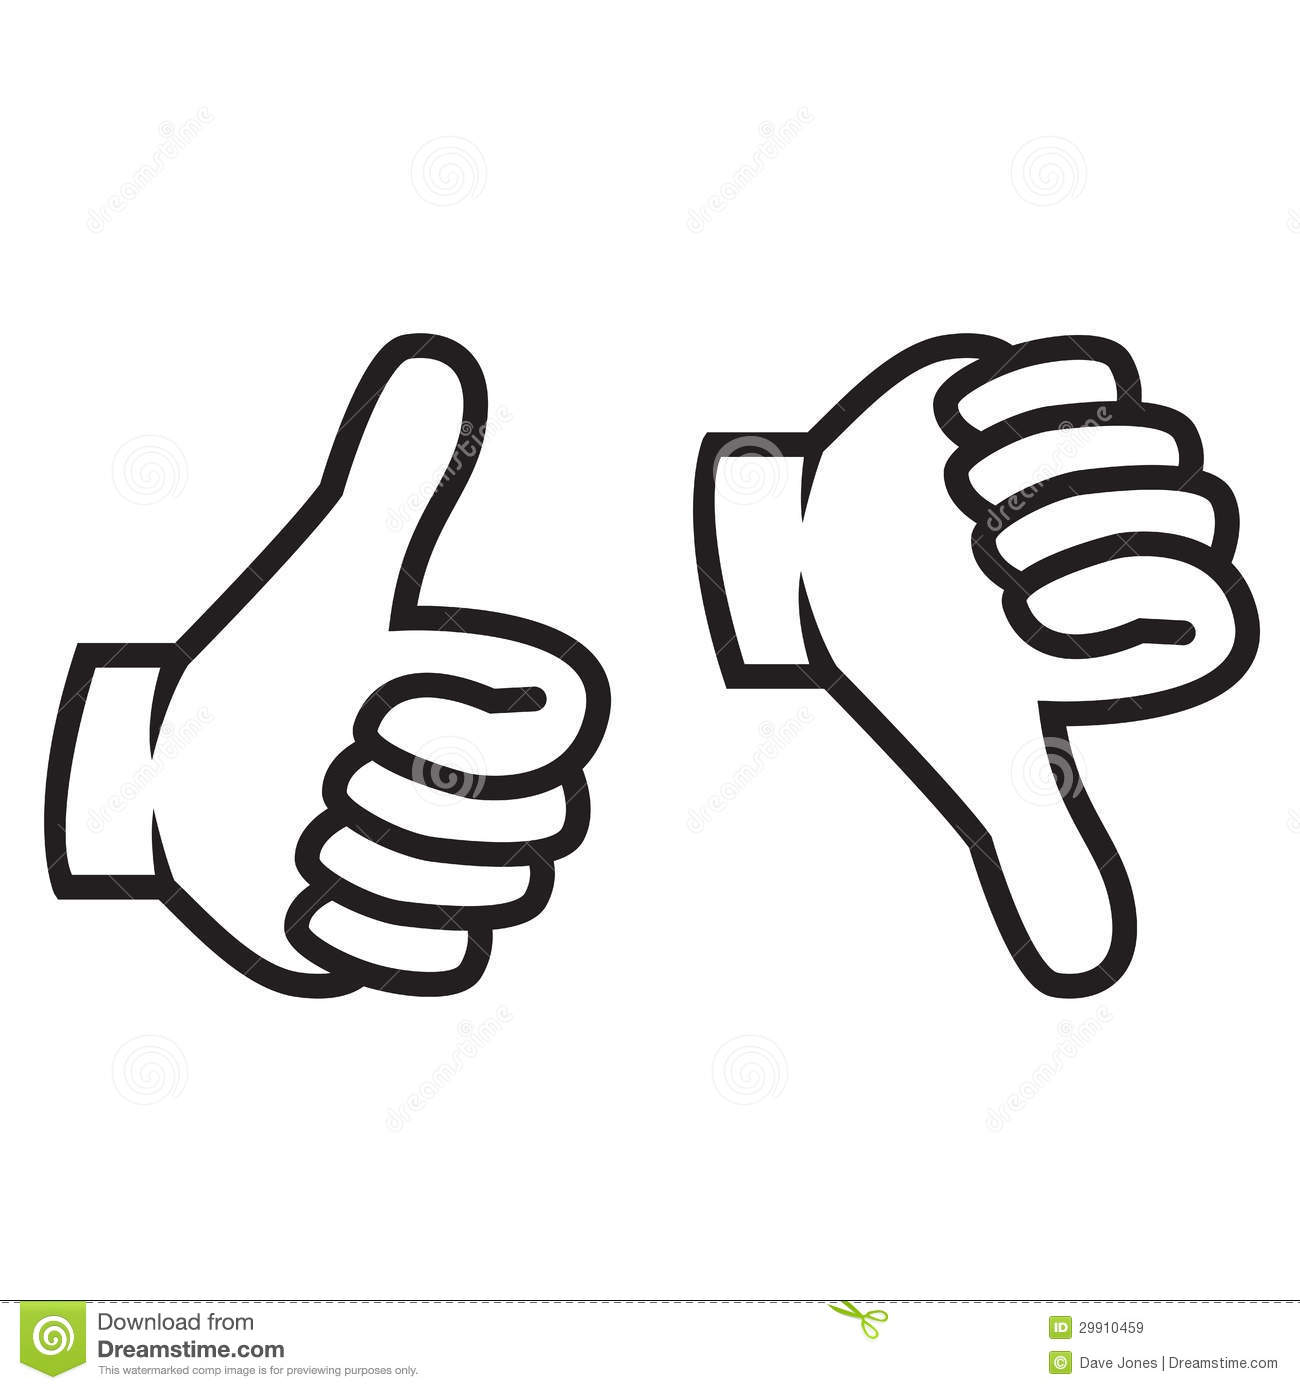 Thumbs Up And Down Gesture Royalty Free Stock Images